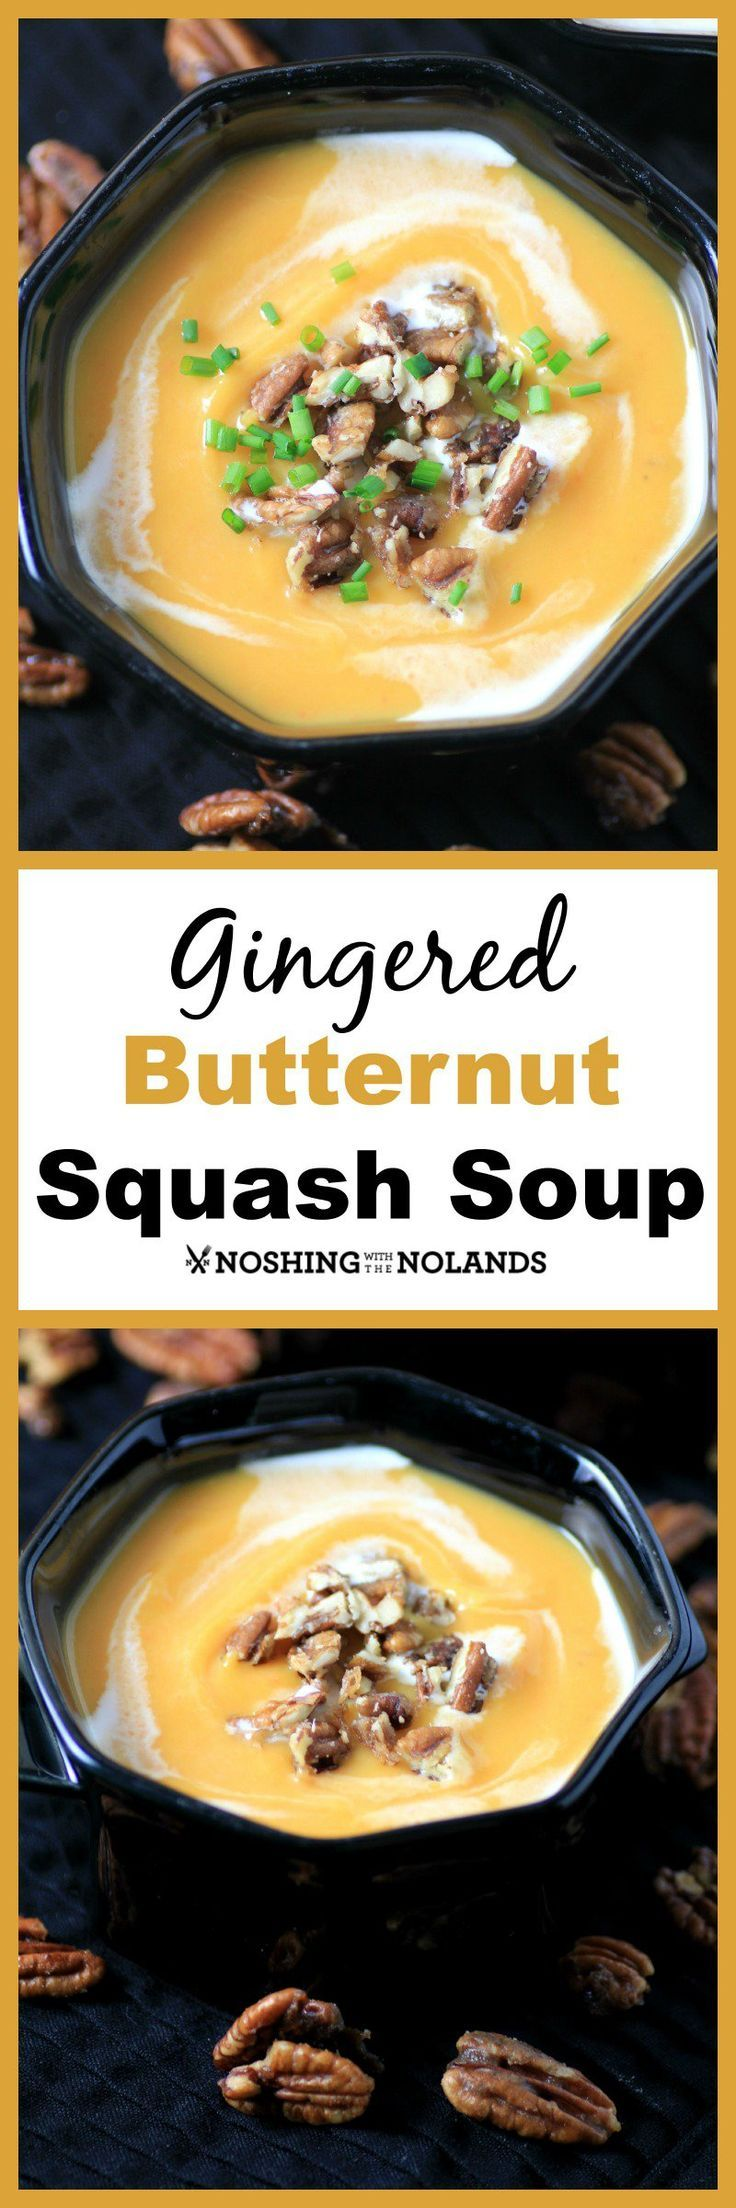 Gingered Butternut Squash Soup by Noshing With The Nolands is a gorgeous fall soup that would be great for Thanksgiving.